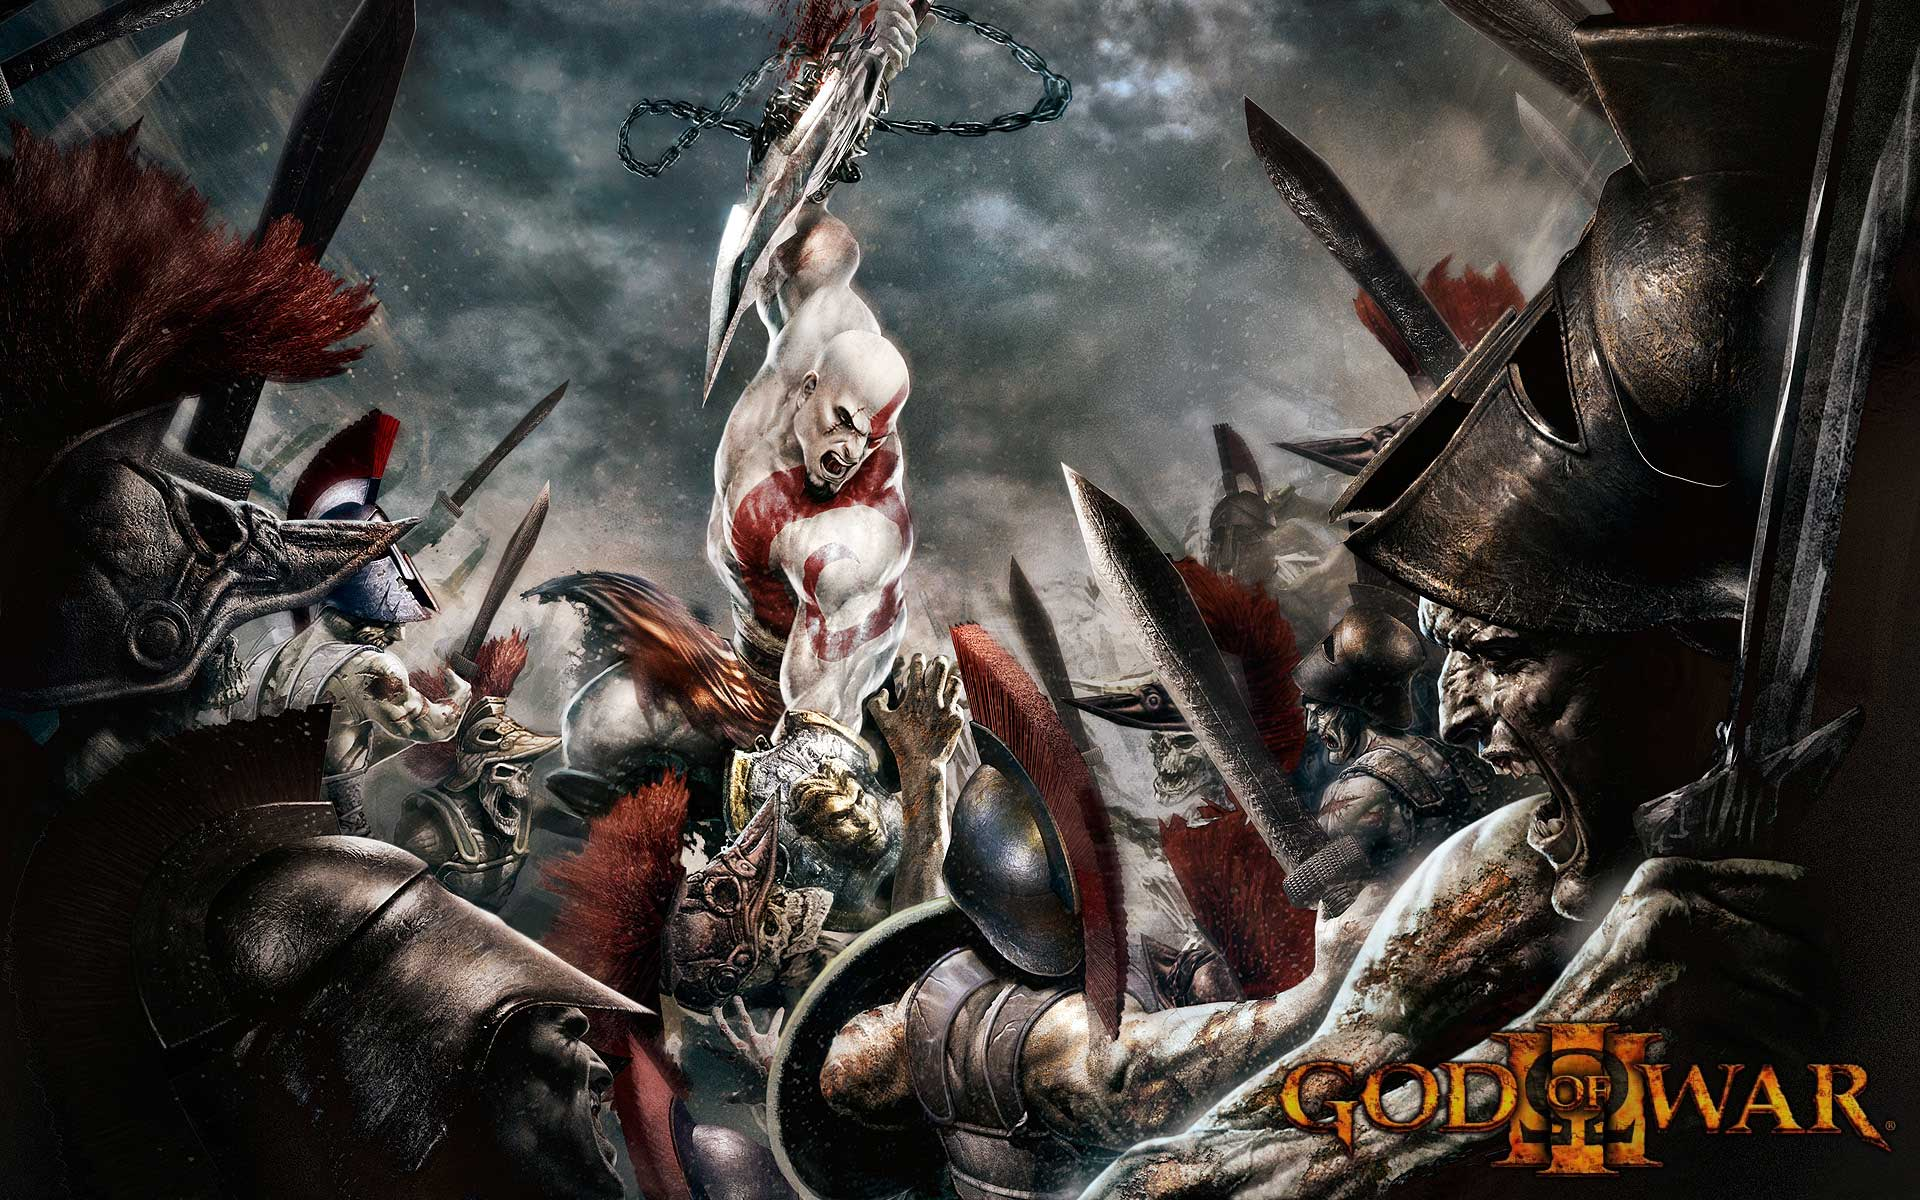 god wallpaper war wallpapers games desktop 1920x1200 1920x1200